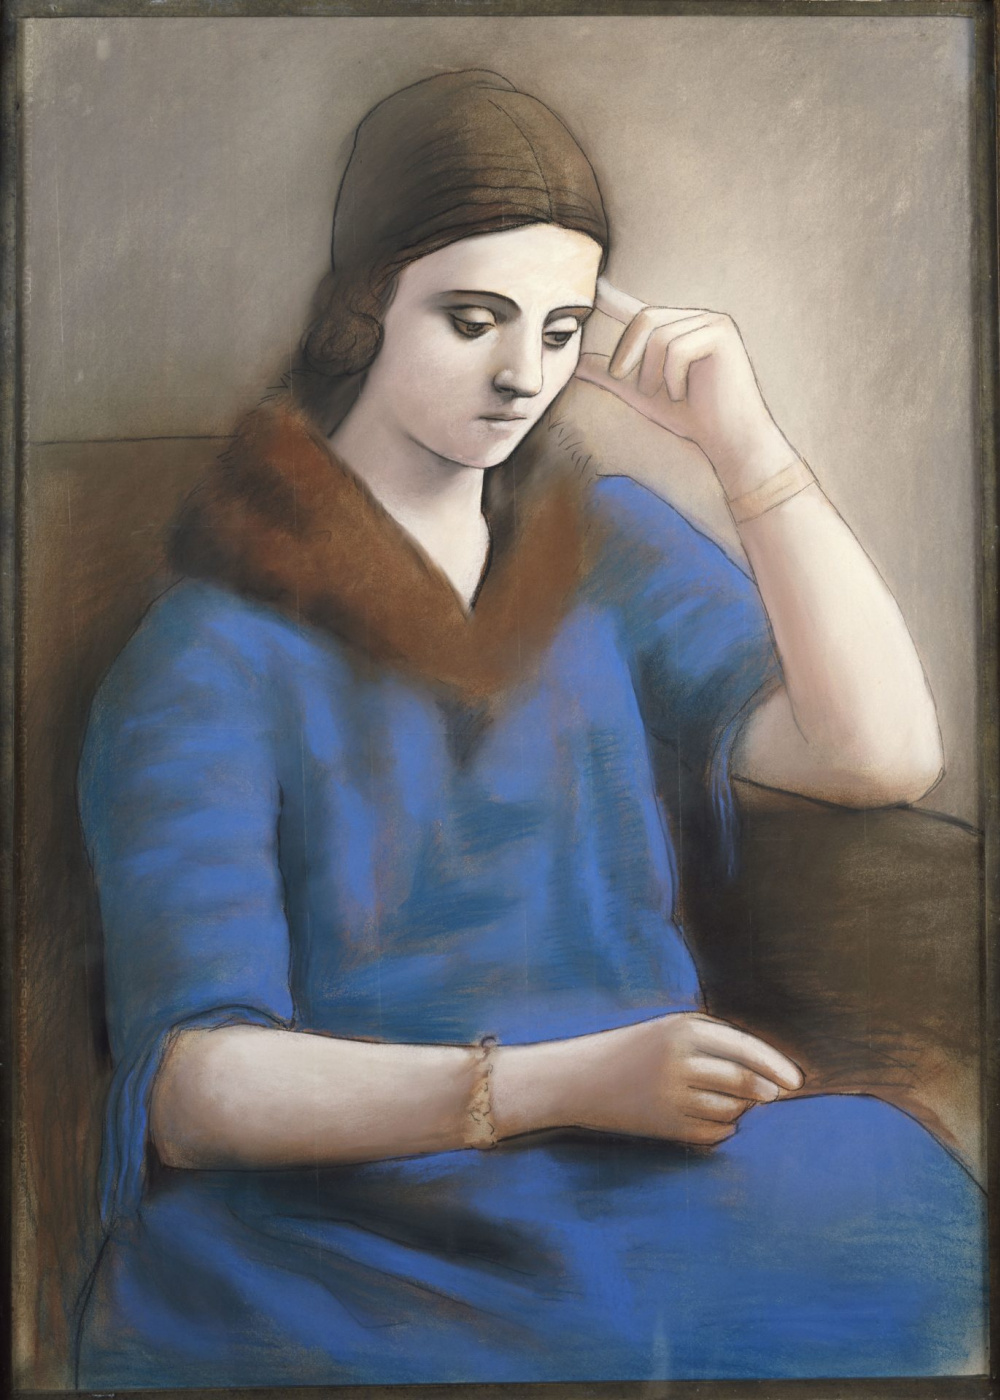 Pablo Picasso. Olga lost in thought